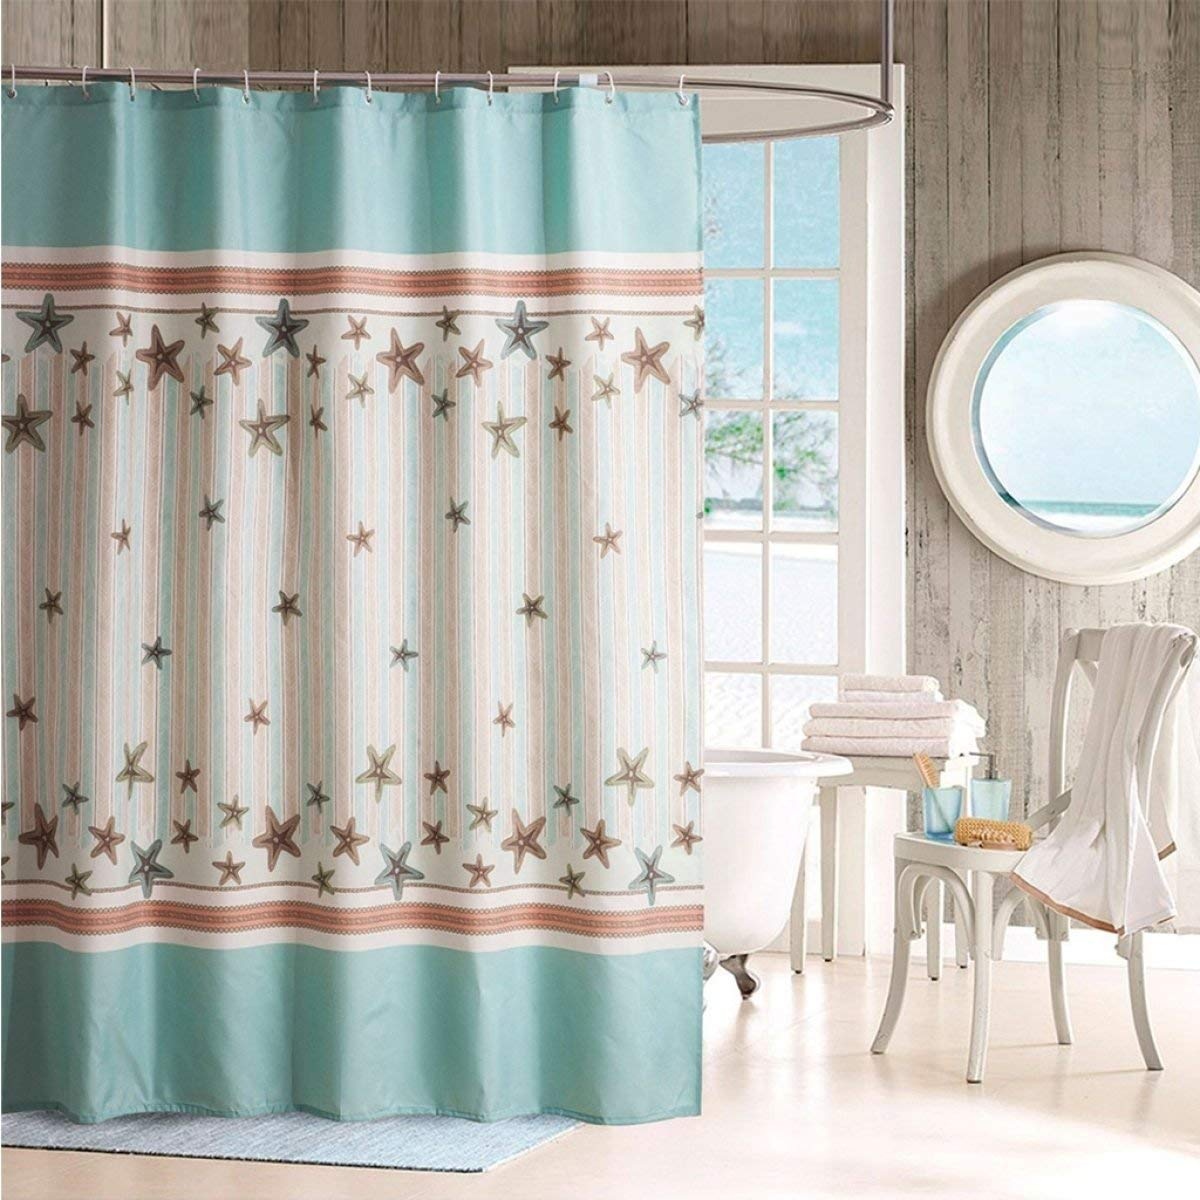 Der European Rural Small Stars Anti-Wrinkle Thickening Opaque Polyester Bathroom Free Punching Shower Curtain Waterproof and Mildew Bathroom Accessories (Size : 240cm200cm)